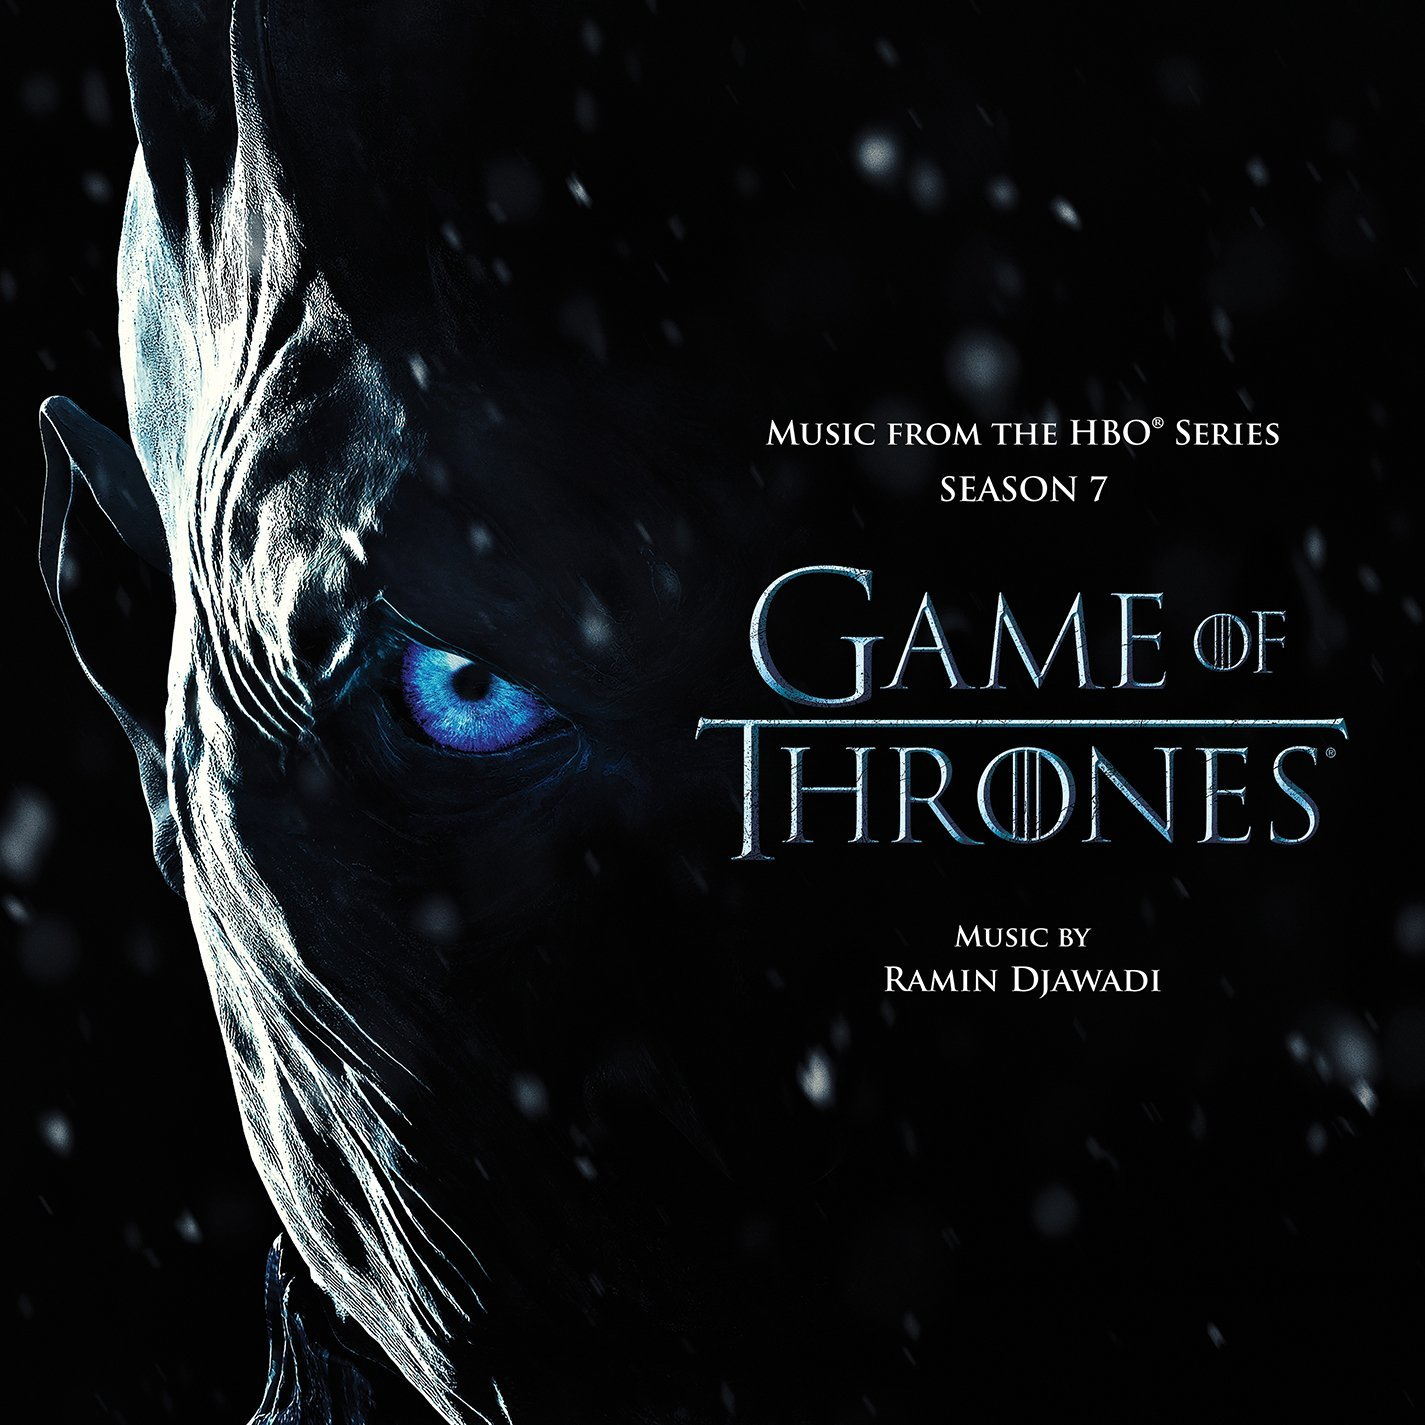 Game Of Thrones Music From The Hbo Series Season 7 Game Of Thrones Wiki Fandom